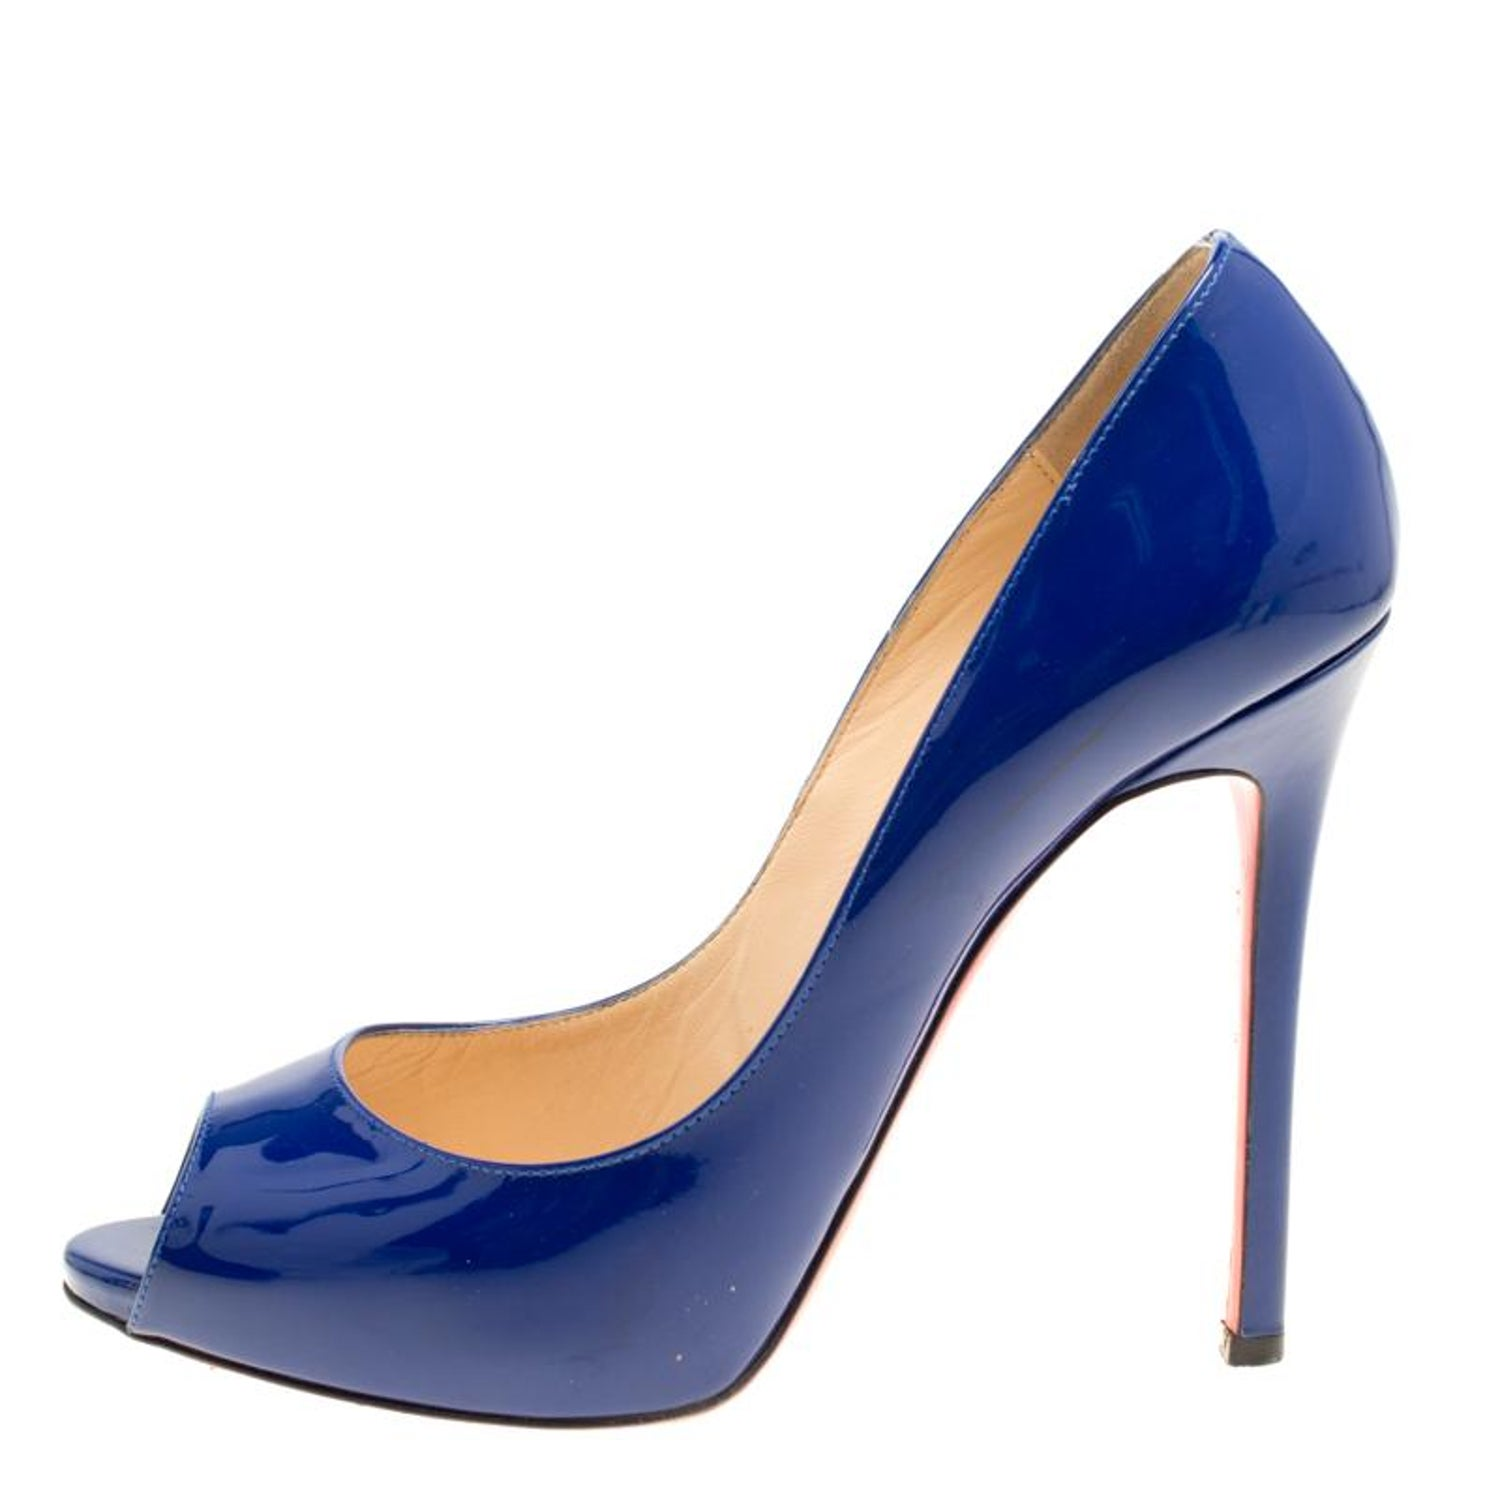 bcc1d62d9deb Christian Louboutin Blue Patent Leather Flo Peep Toe Pumps Size 39 For Sale  at 1stdibs